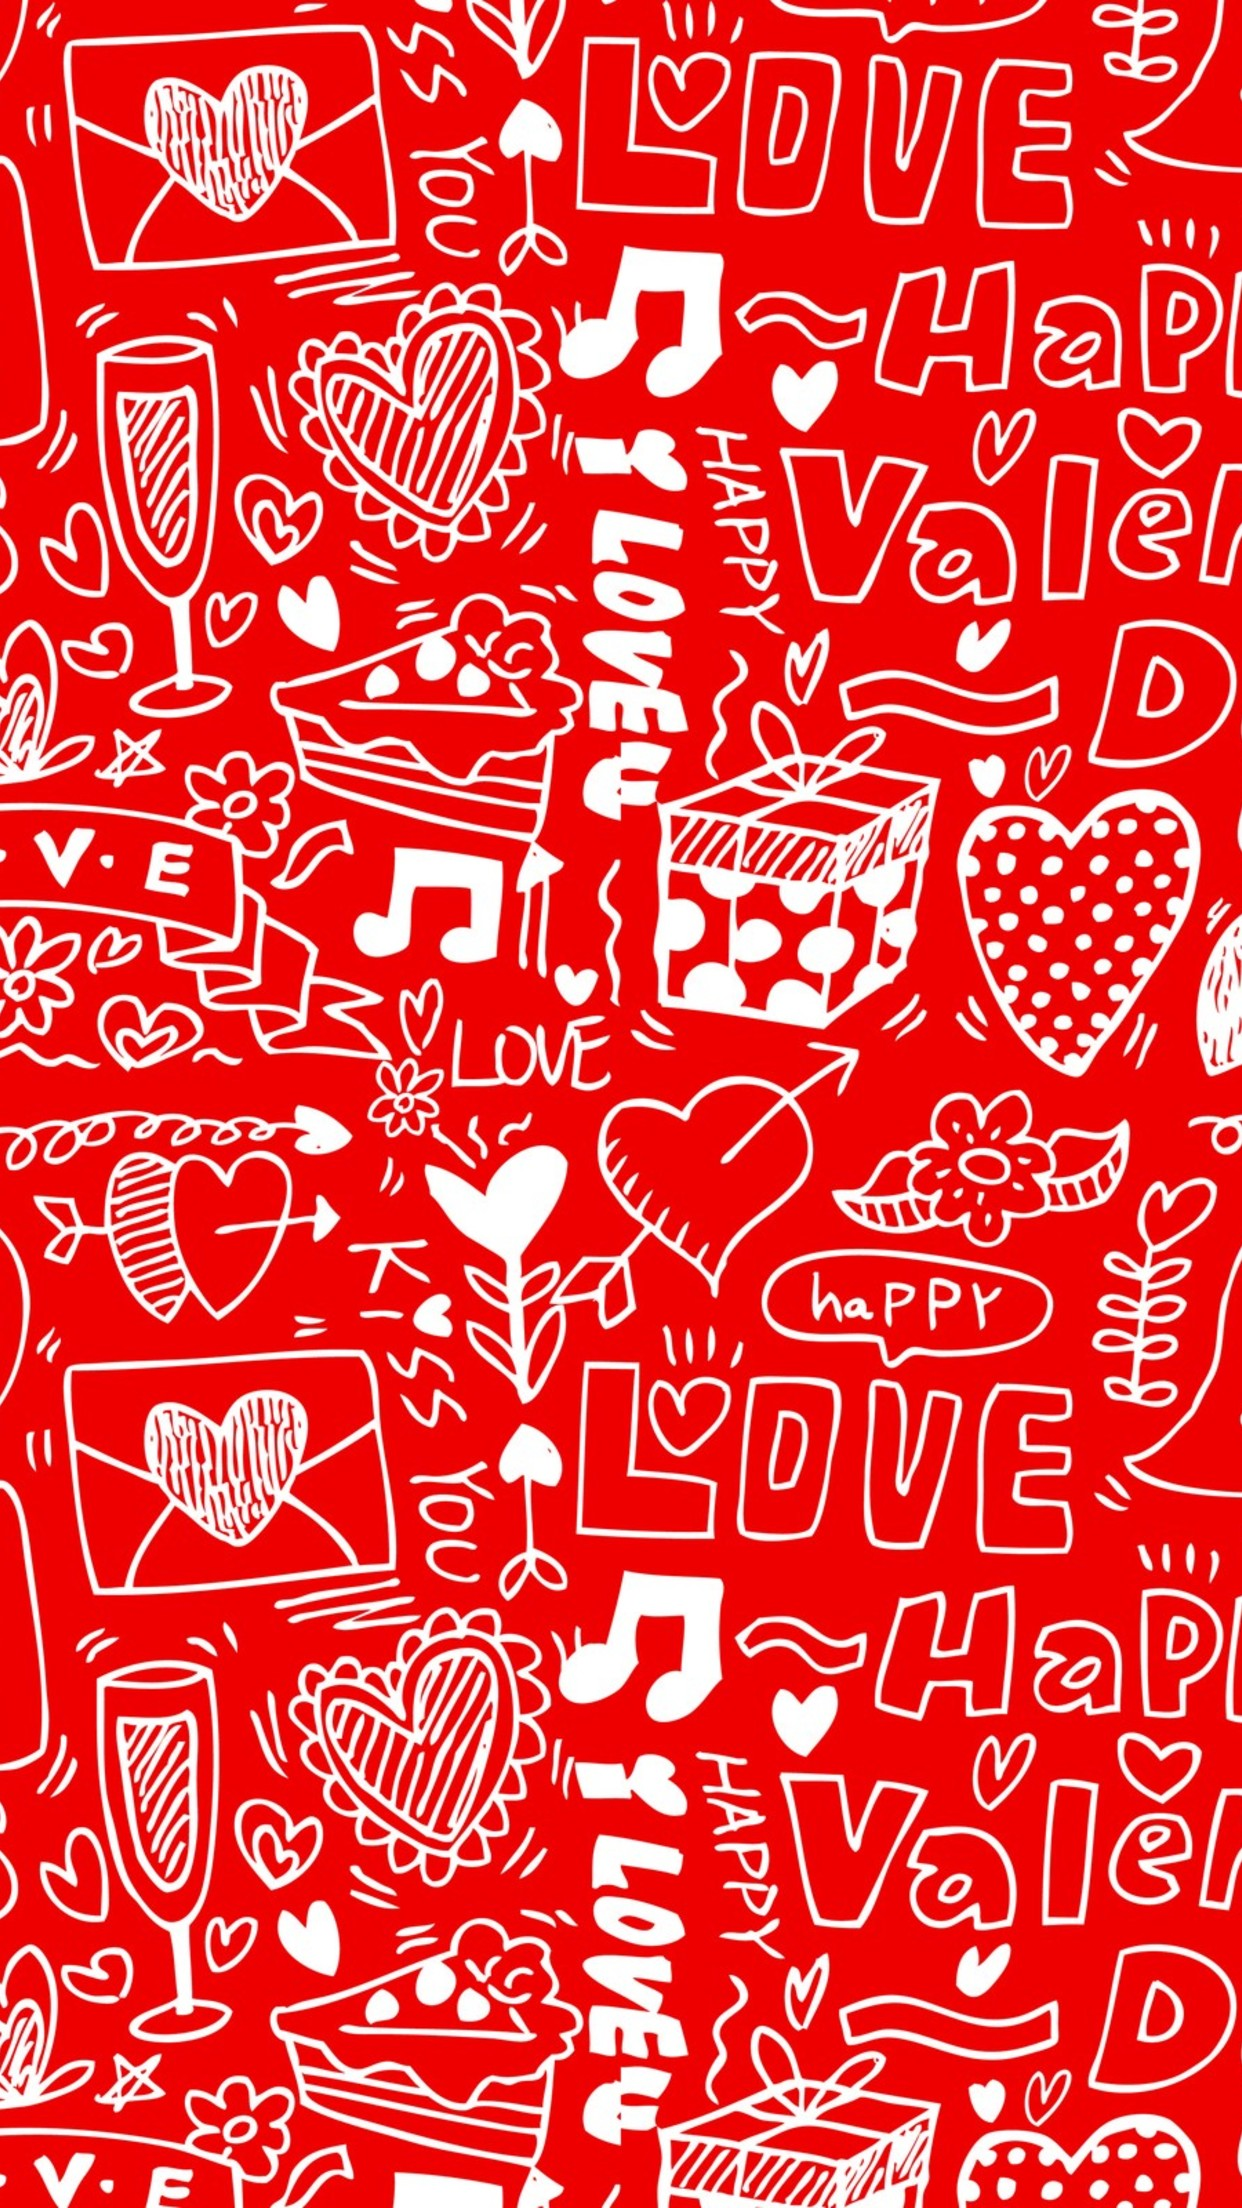 valentines day message 3Wallpapers iPhone Parallax Valentine Day Message